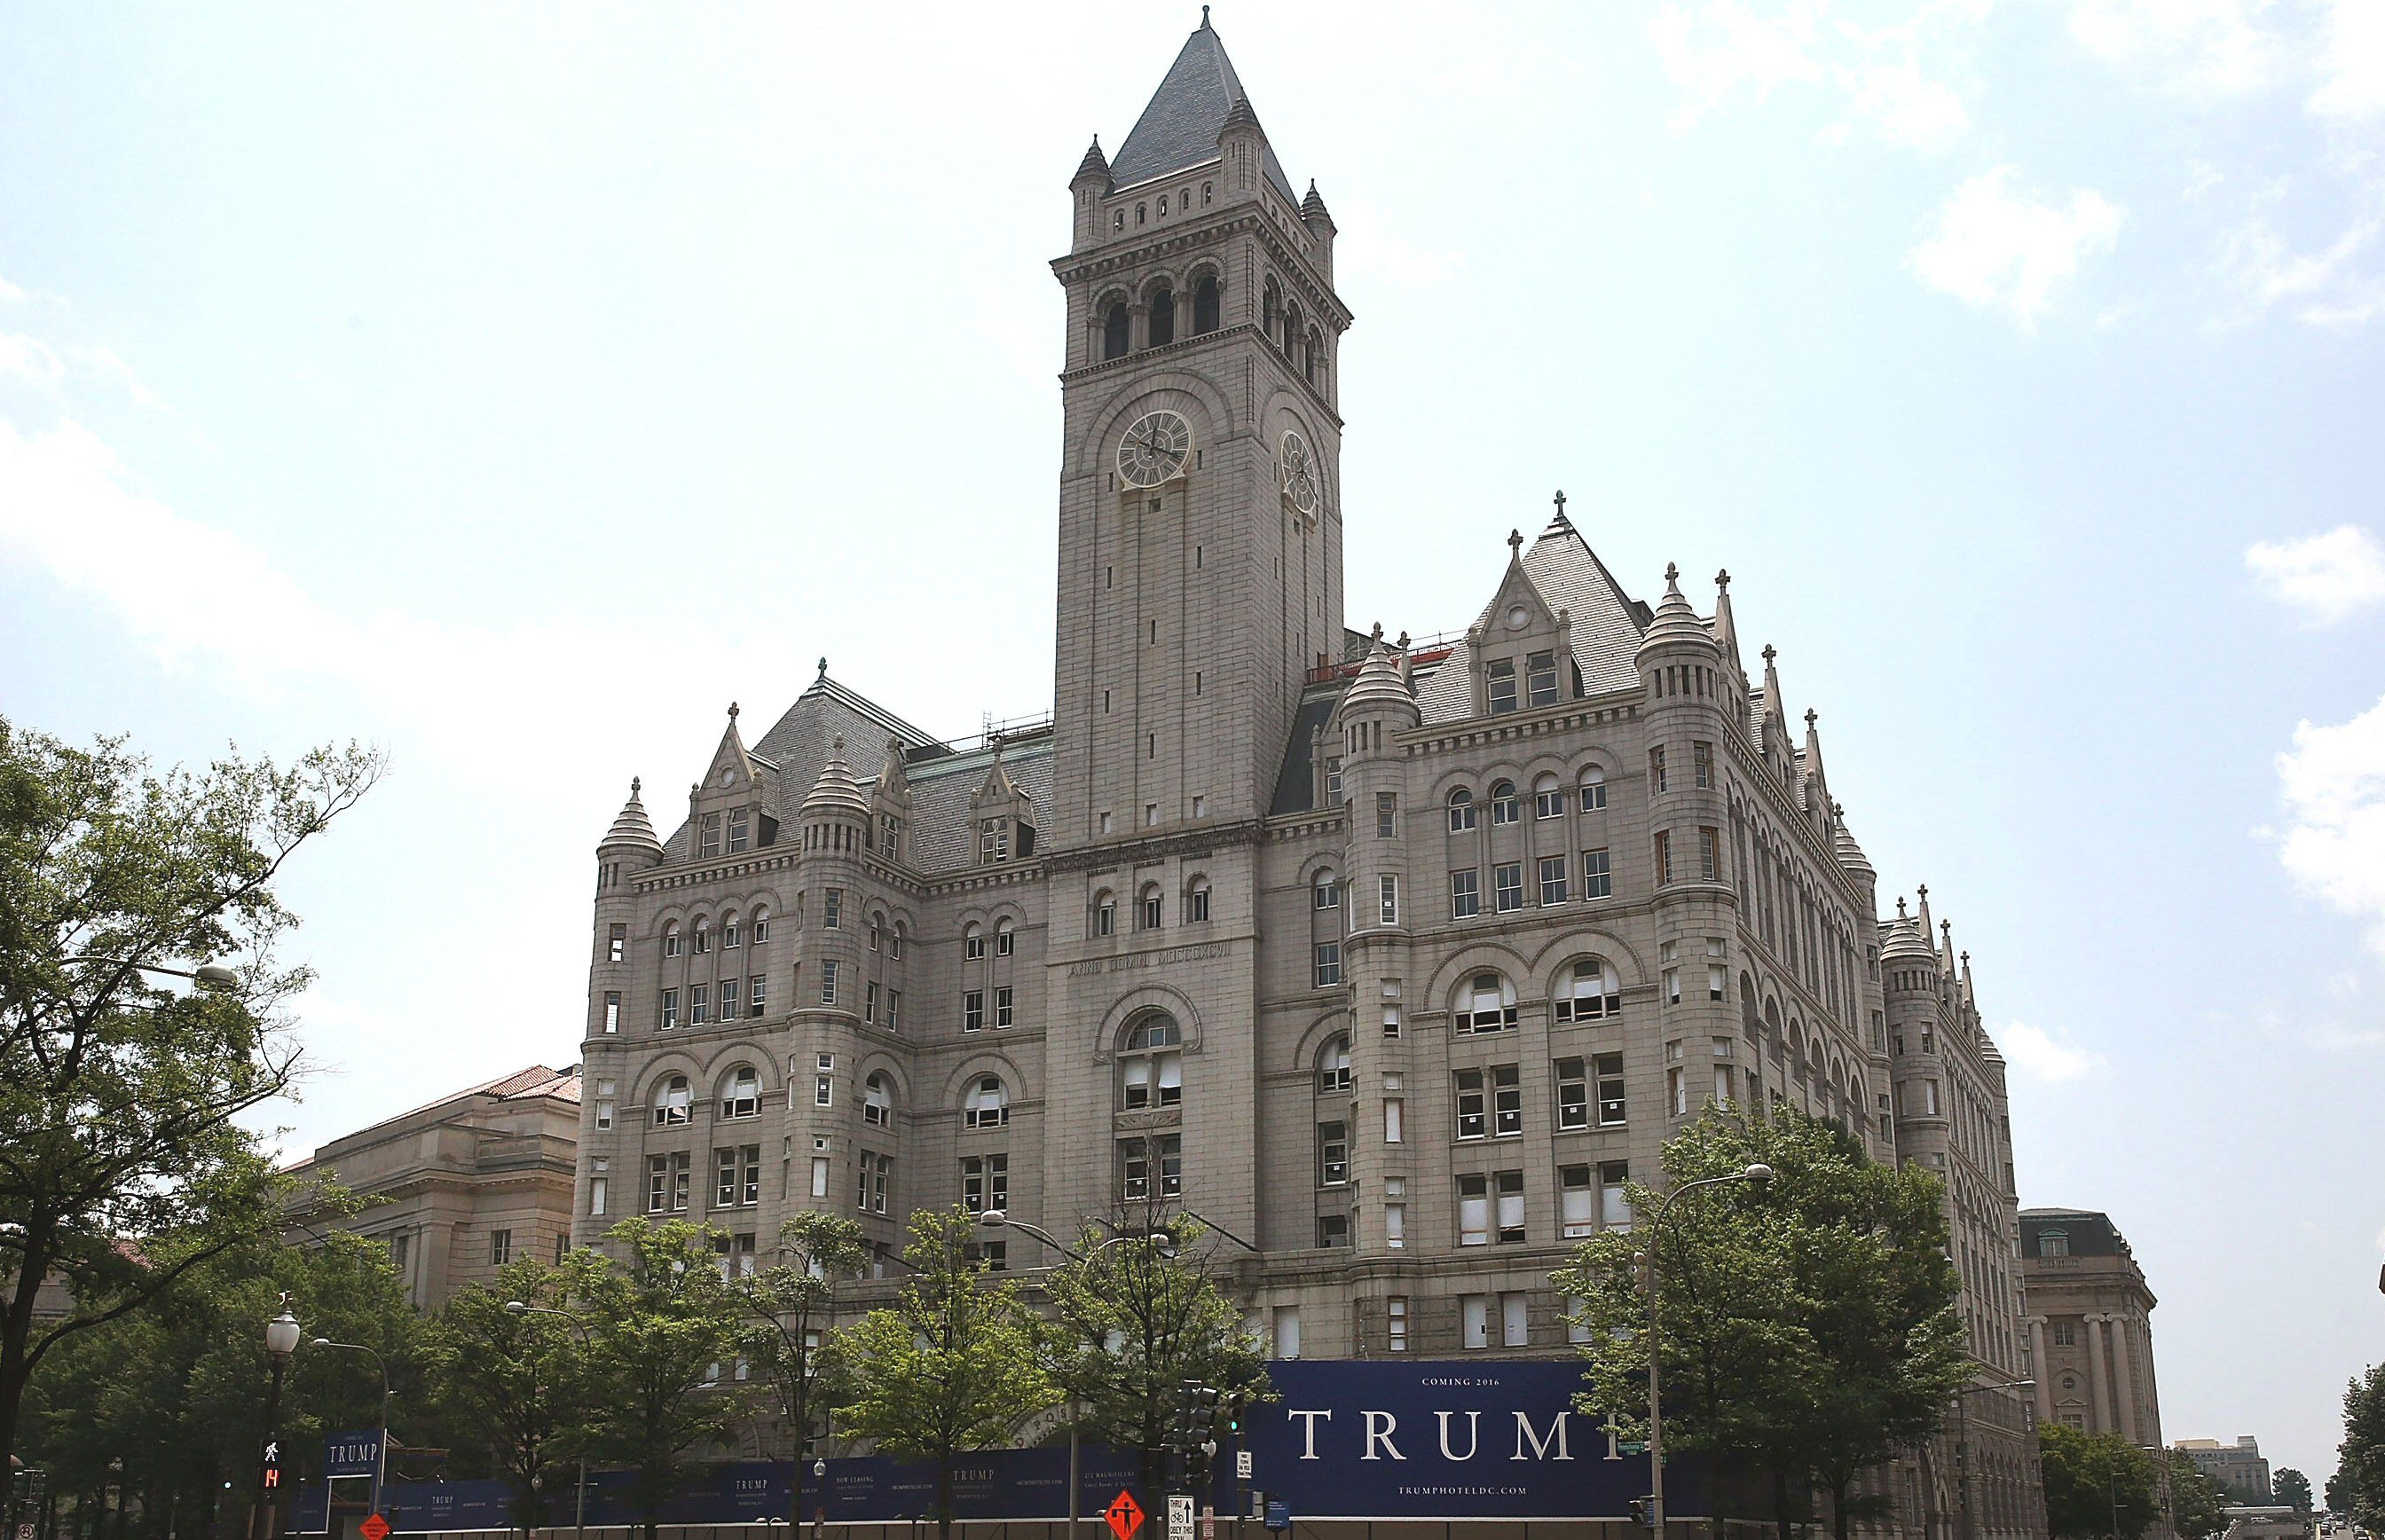 Photograph of the Old Post Office tower in Washington, District of Columbia, with TRUMP sign in front